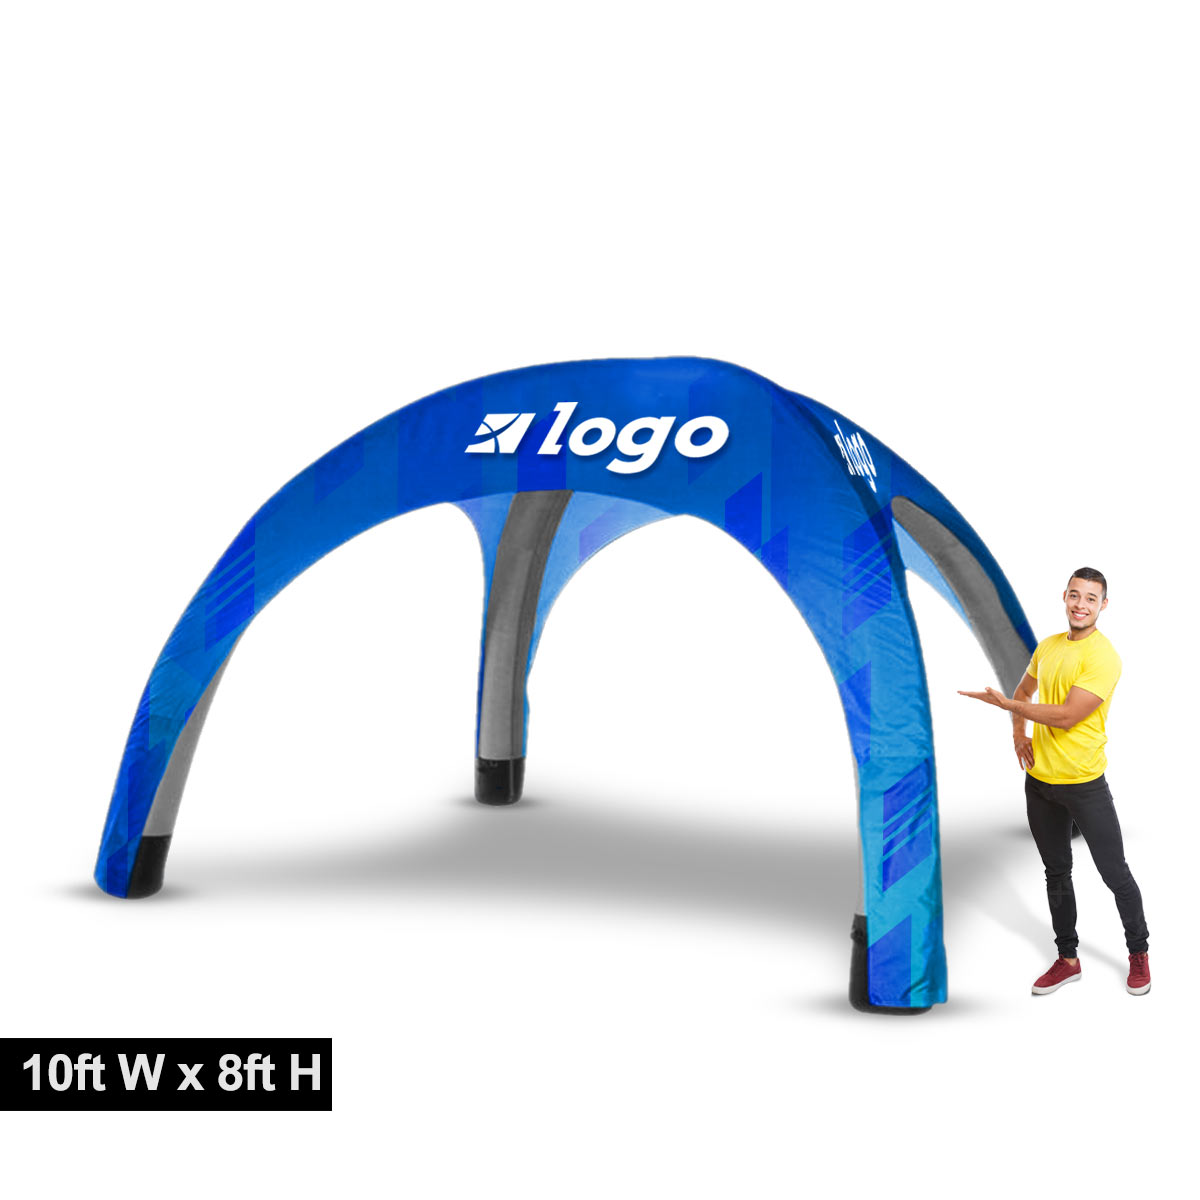 Custom Printed Inflatable Tent 10ft